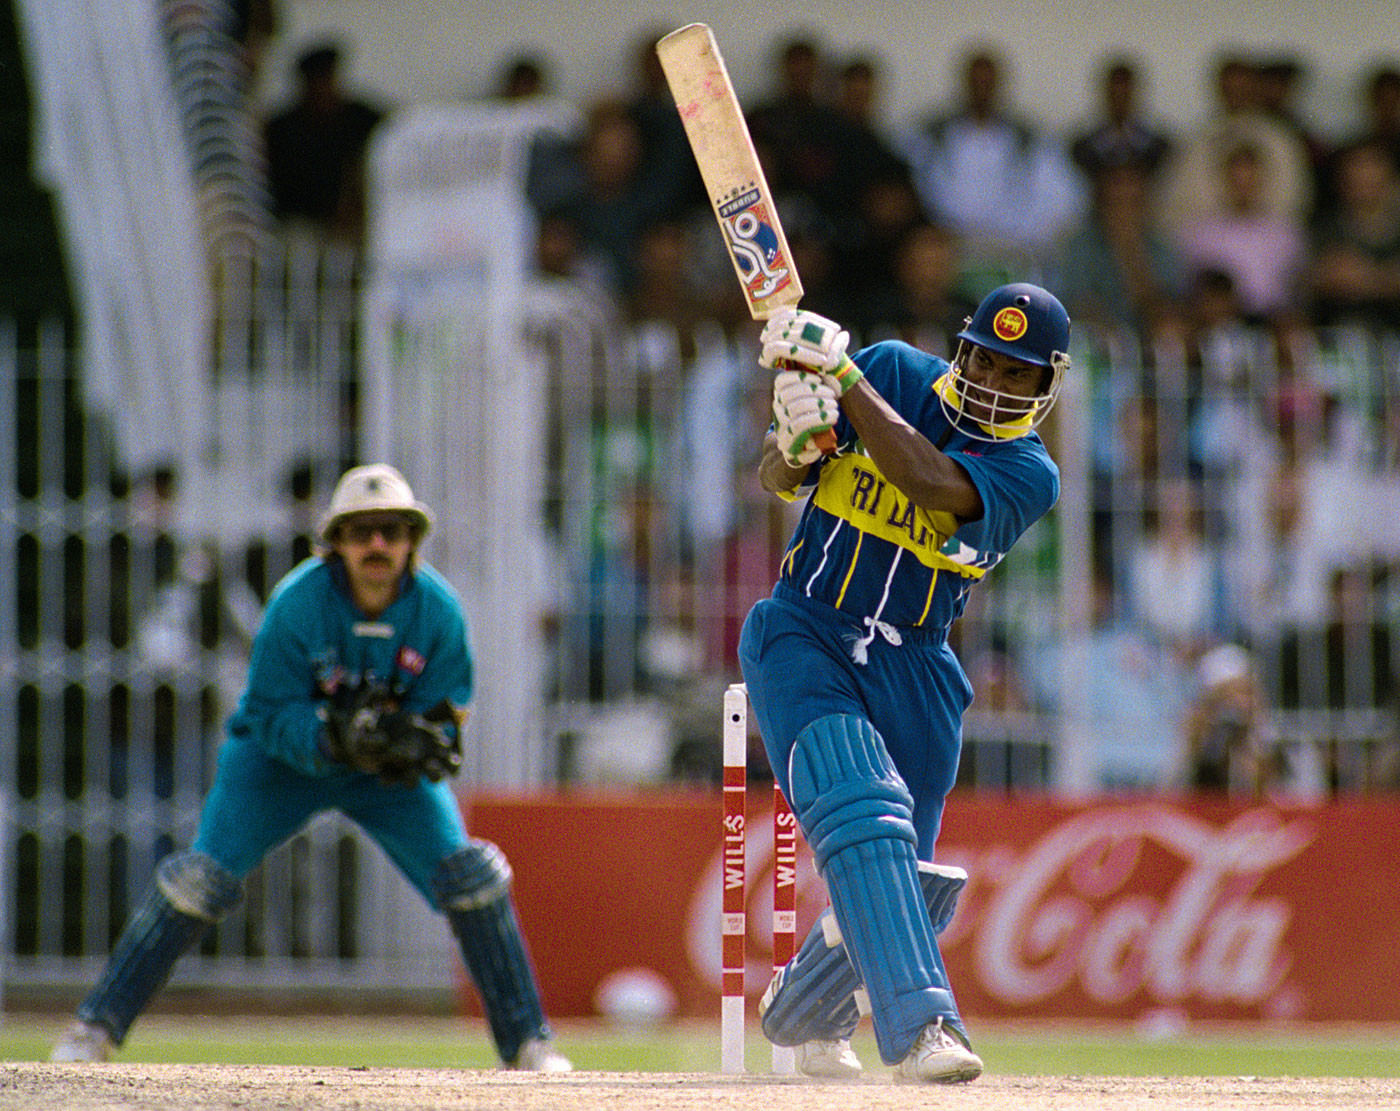 Sanath Jayasuriya is one of Sri Lanka's greatest cricketers and a member of its 1996 World Cup-winning team ©Getty Images